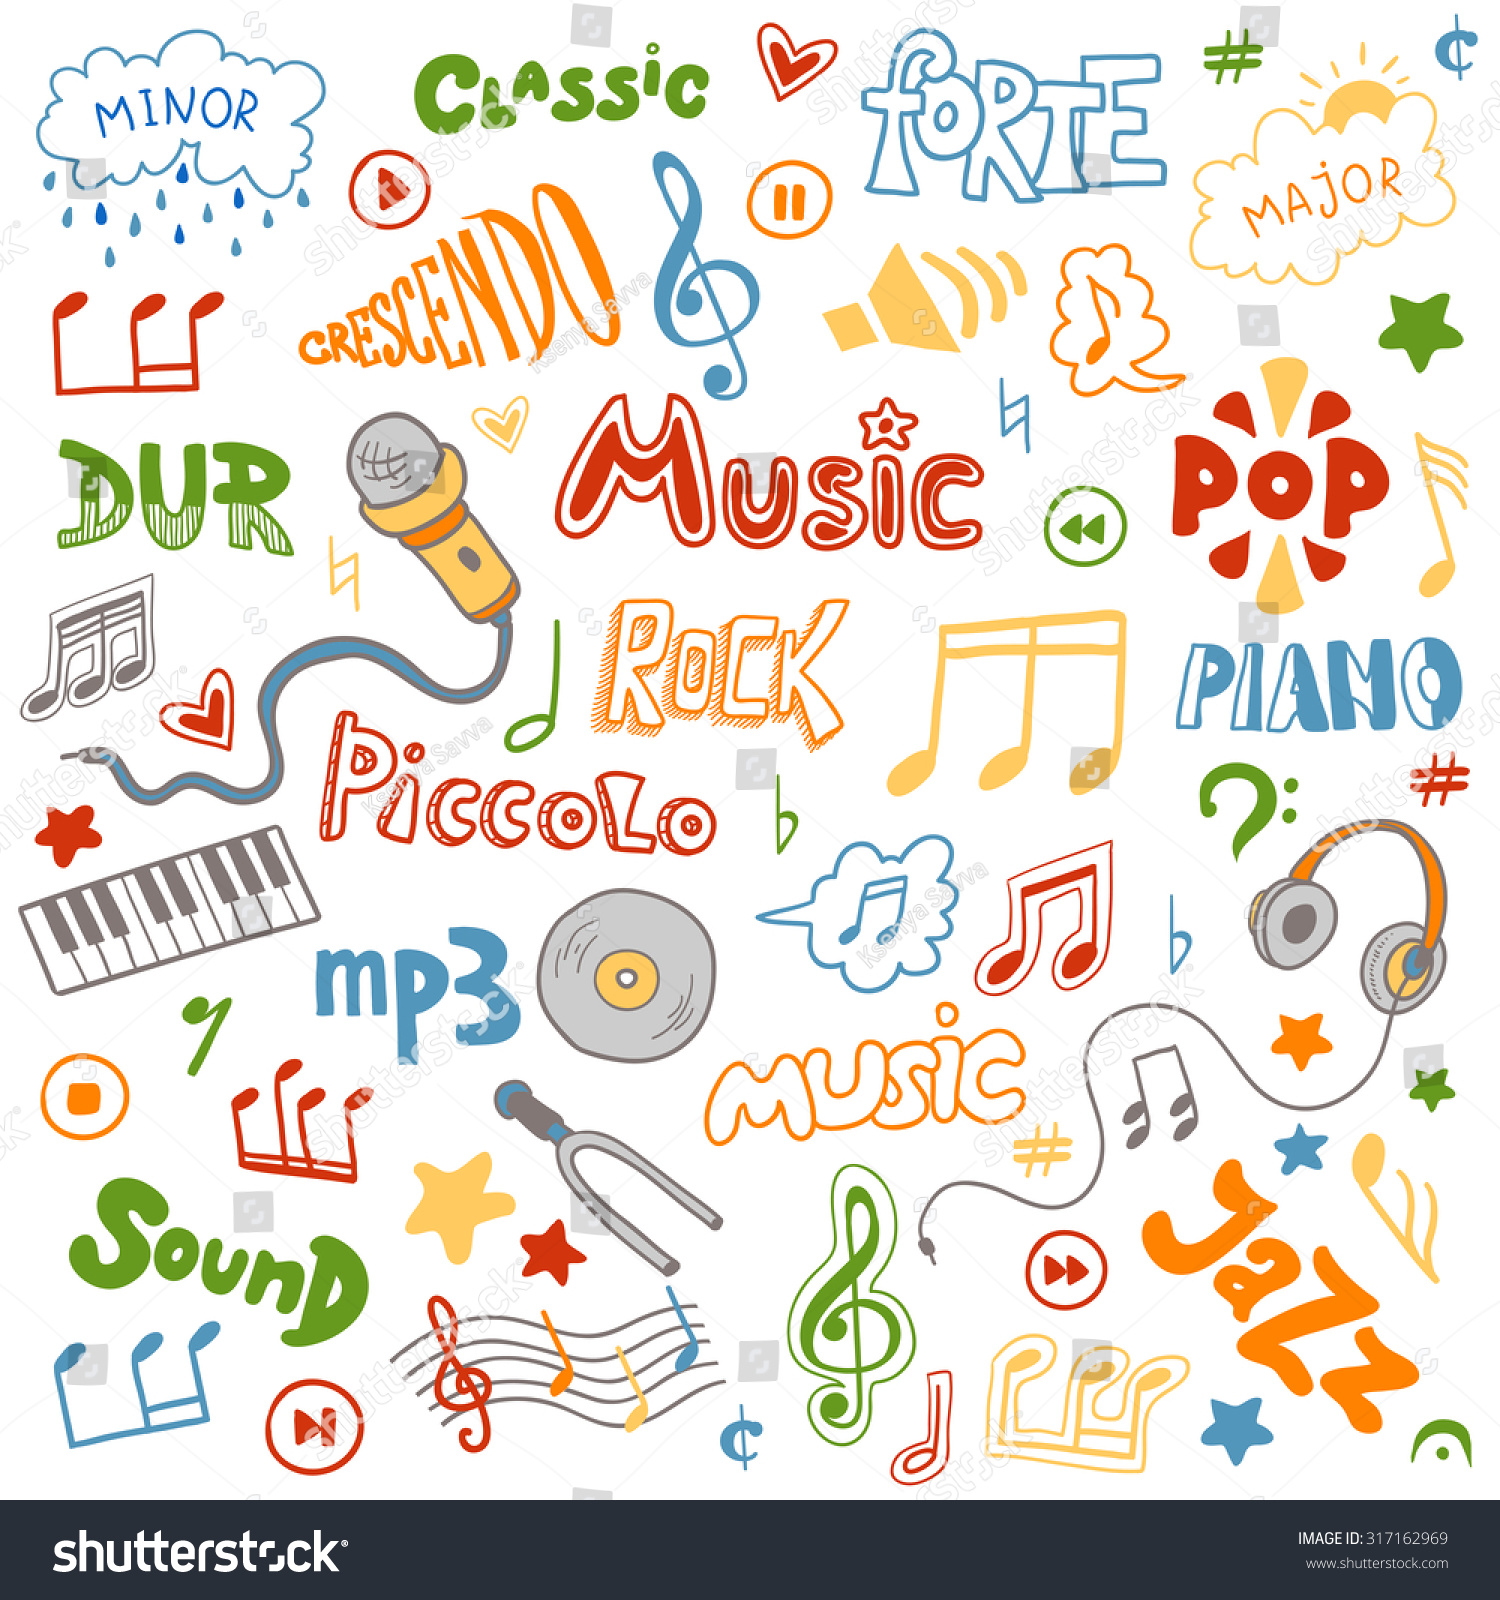 Musical symbol crossword images symbol and sign ideas vector set hand drawn doodles on stock vector 317162969 shutterstock vector set of hand drawn doodles buycottarizona